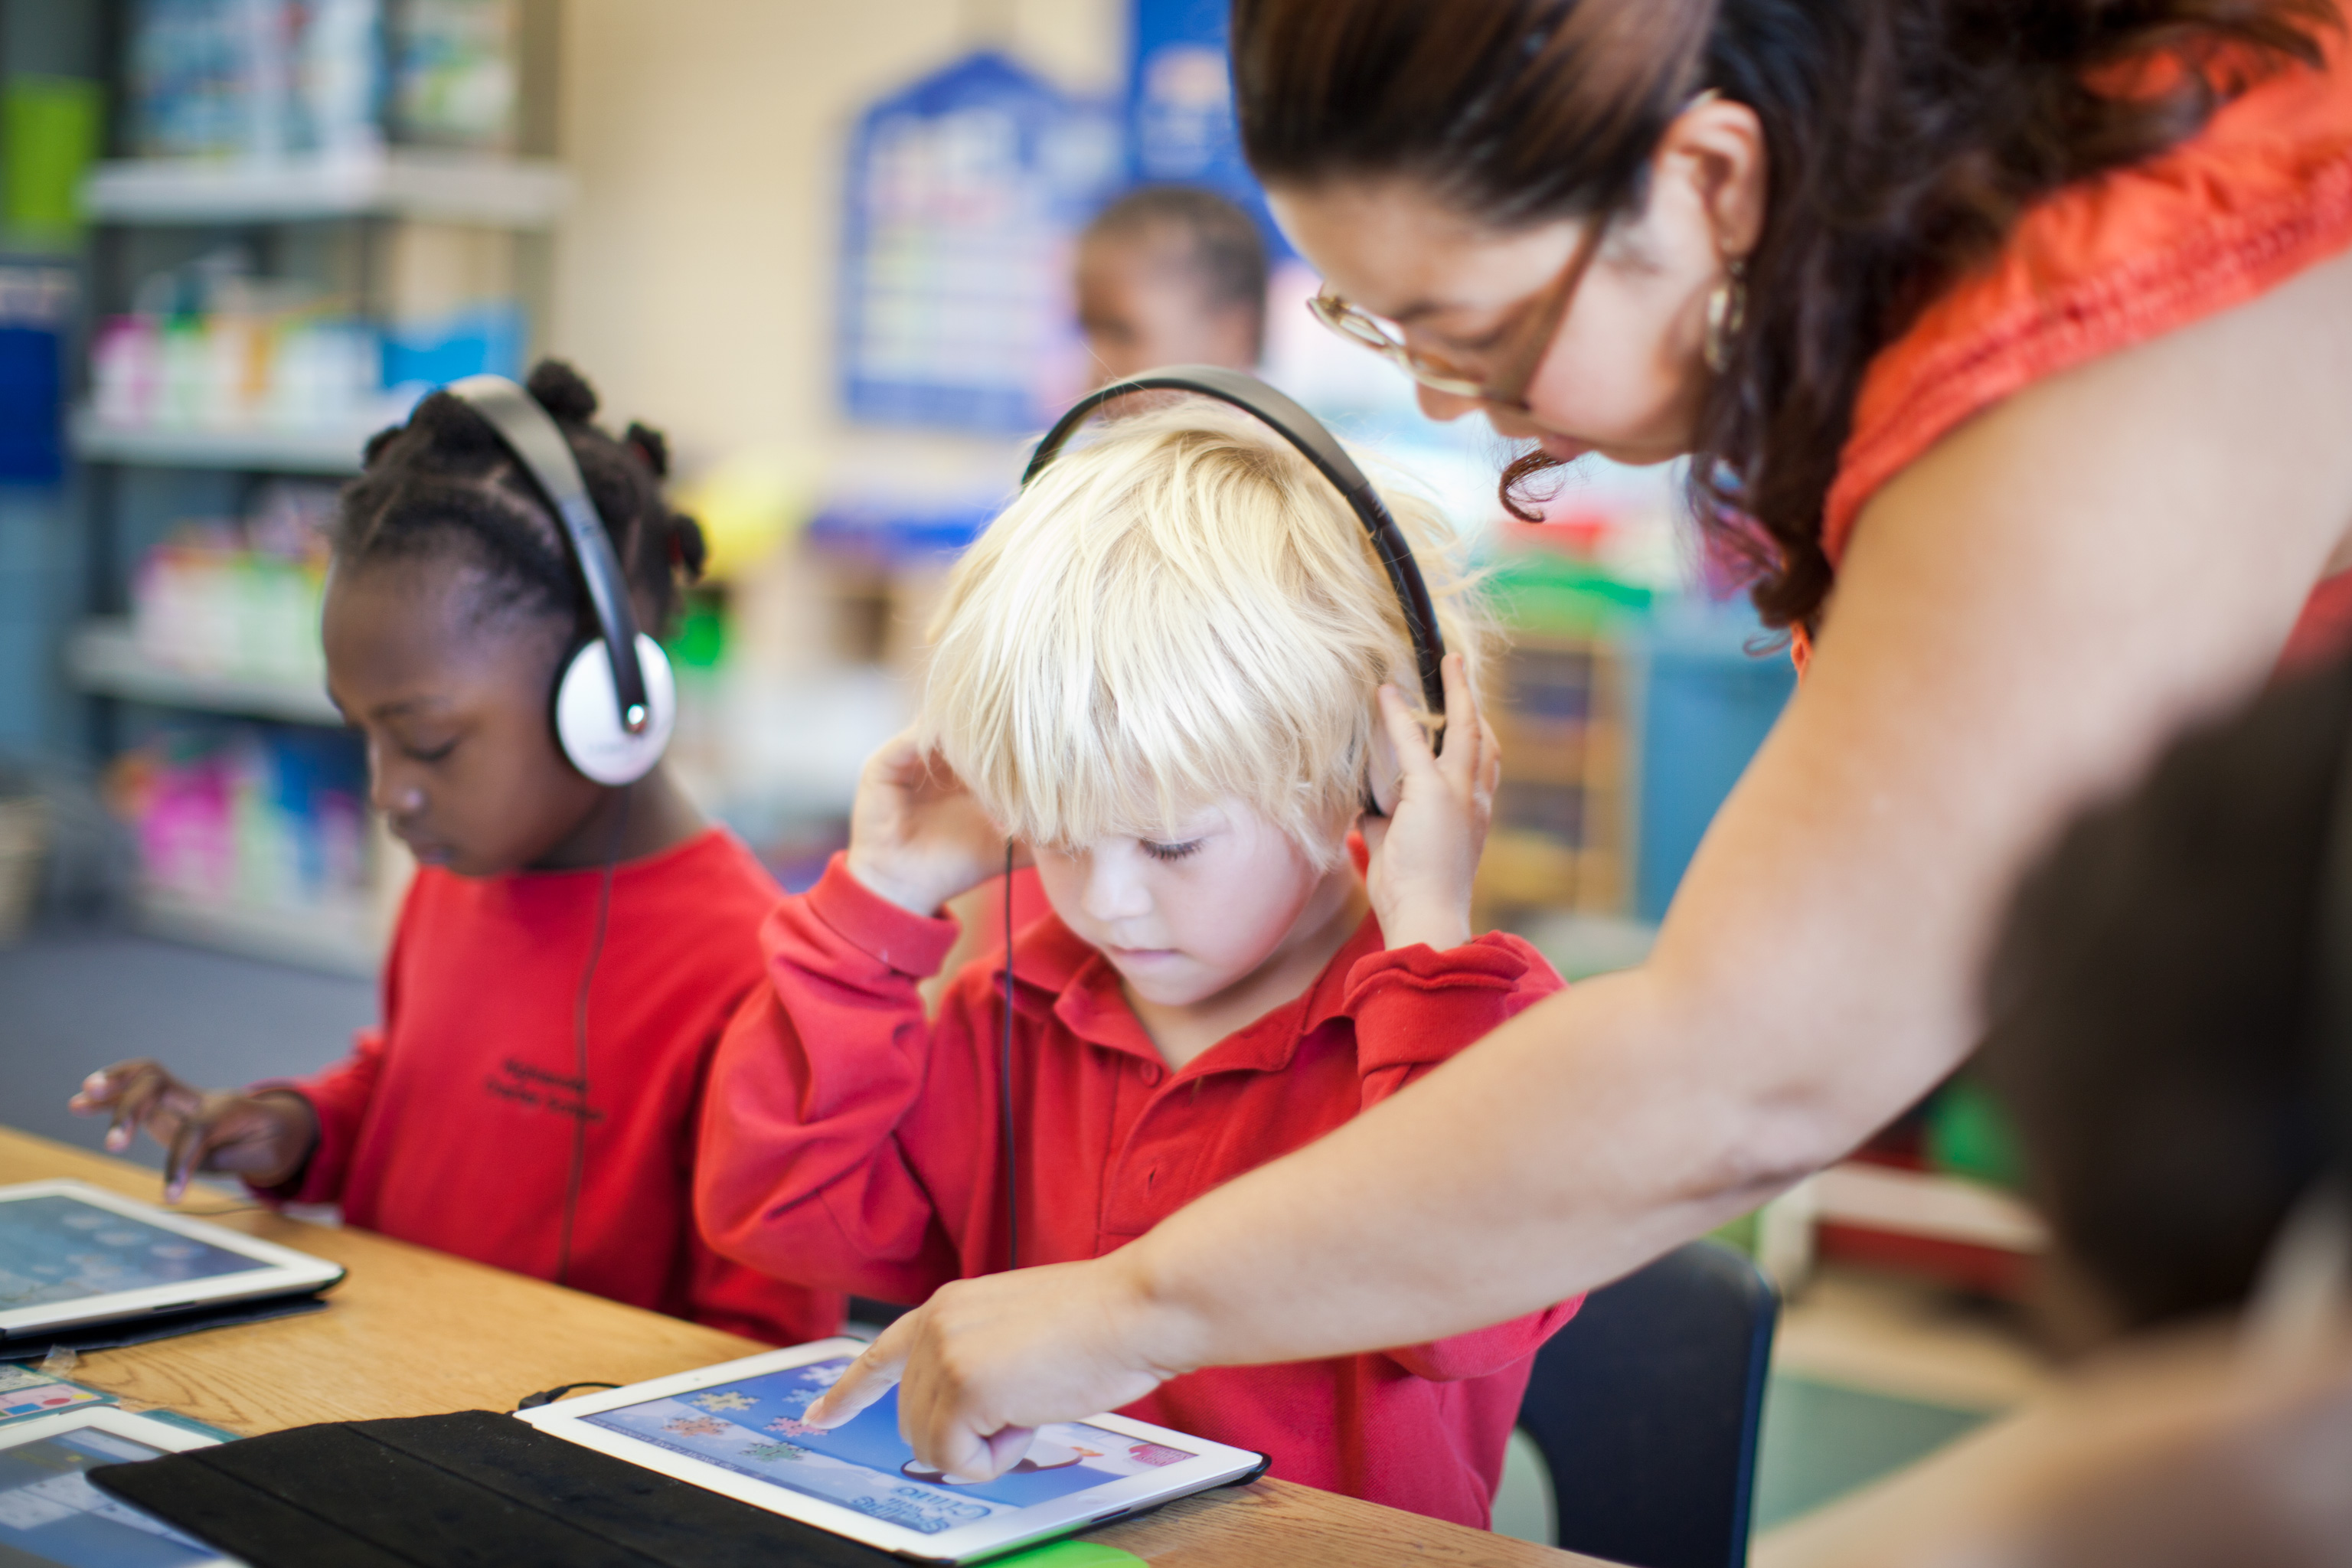 learning technology teacher student helping help ipads ipad edtech education practising repetitive skills limited research resources